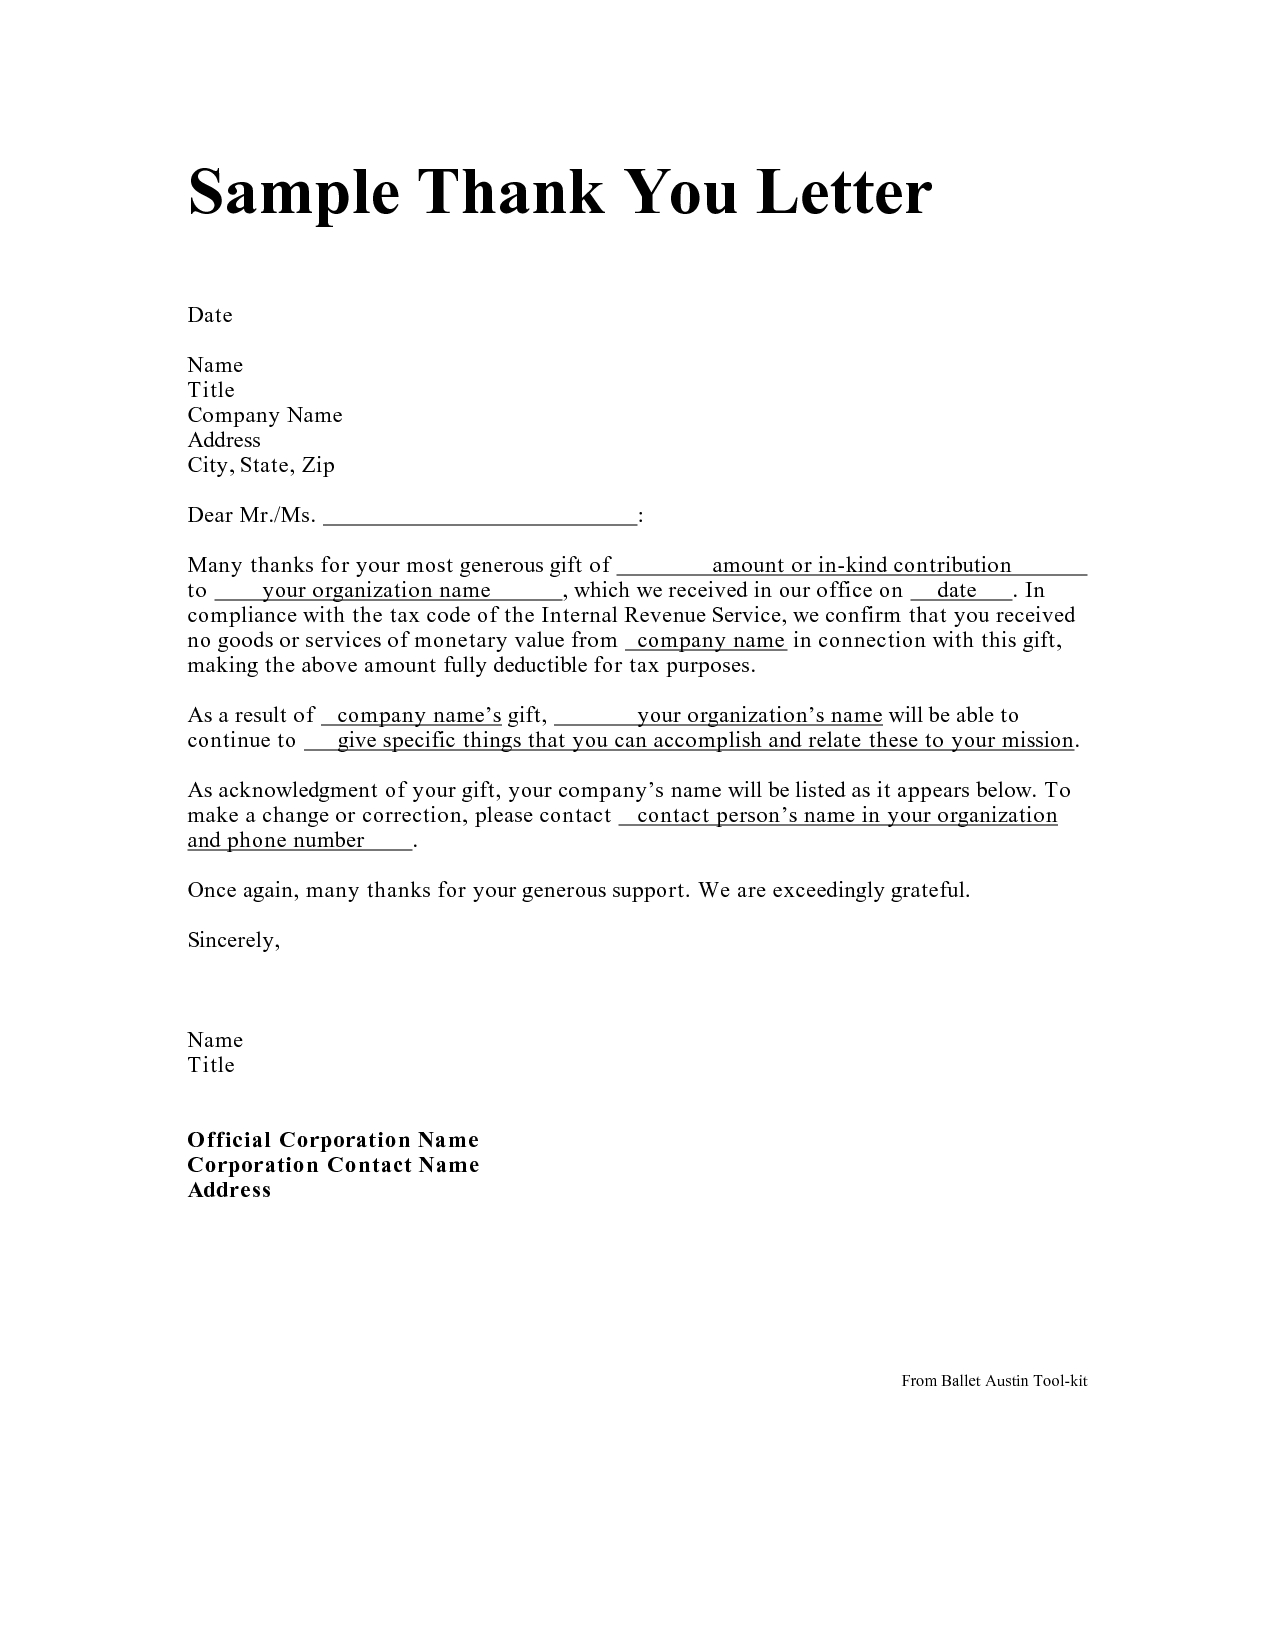 Loan Satisfaction Letter Template - Personal Thank You Letter Personal Thank You Letter Samples